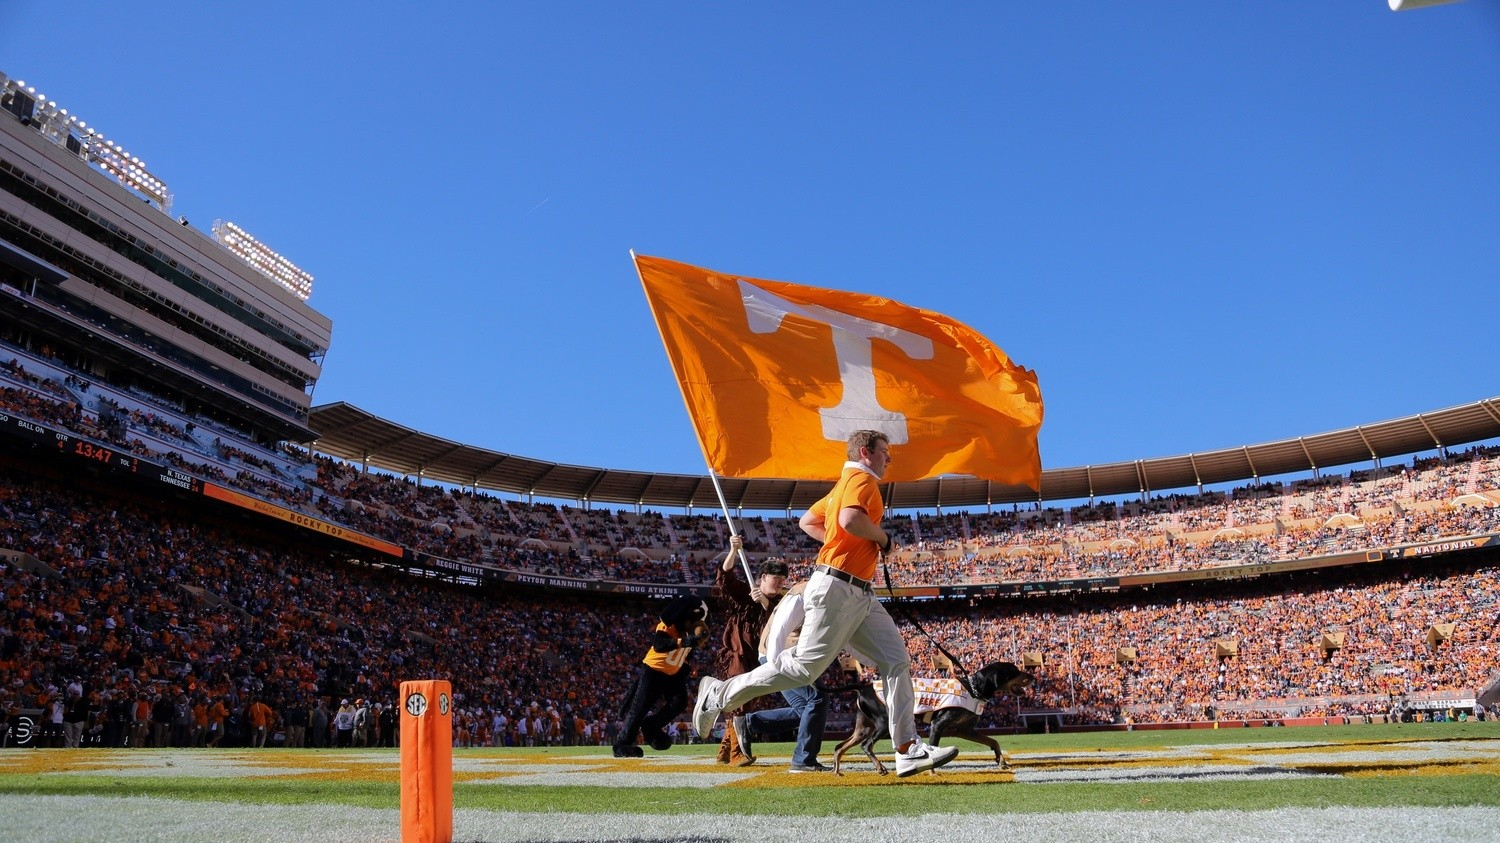 With Sexual Assault Lawsuit, Tennessee Has a Lot of Explaining to Do